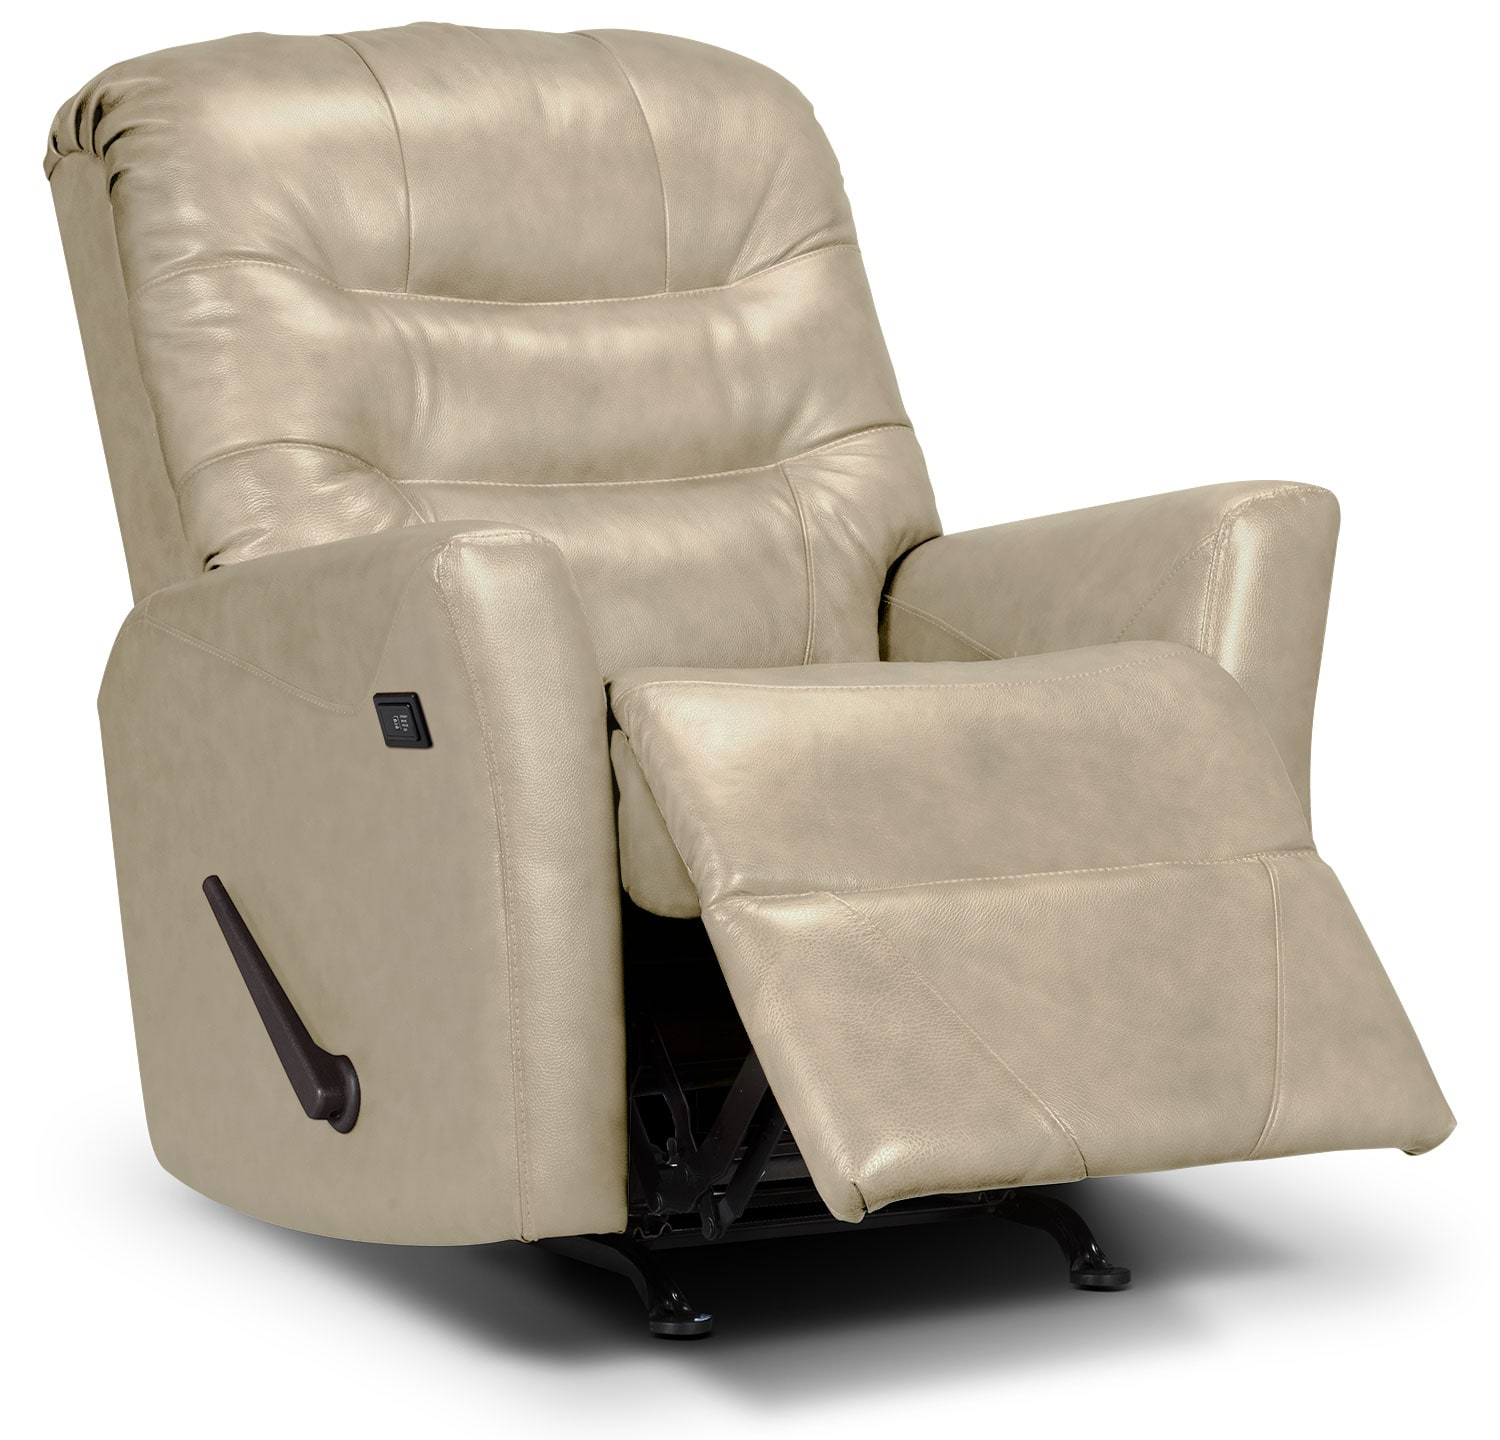 Designed2B Recliner 4560 Genuine Leather Massage Recliner - Taupe